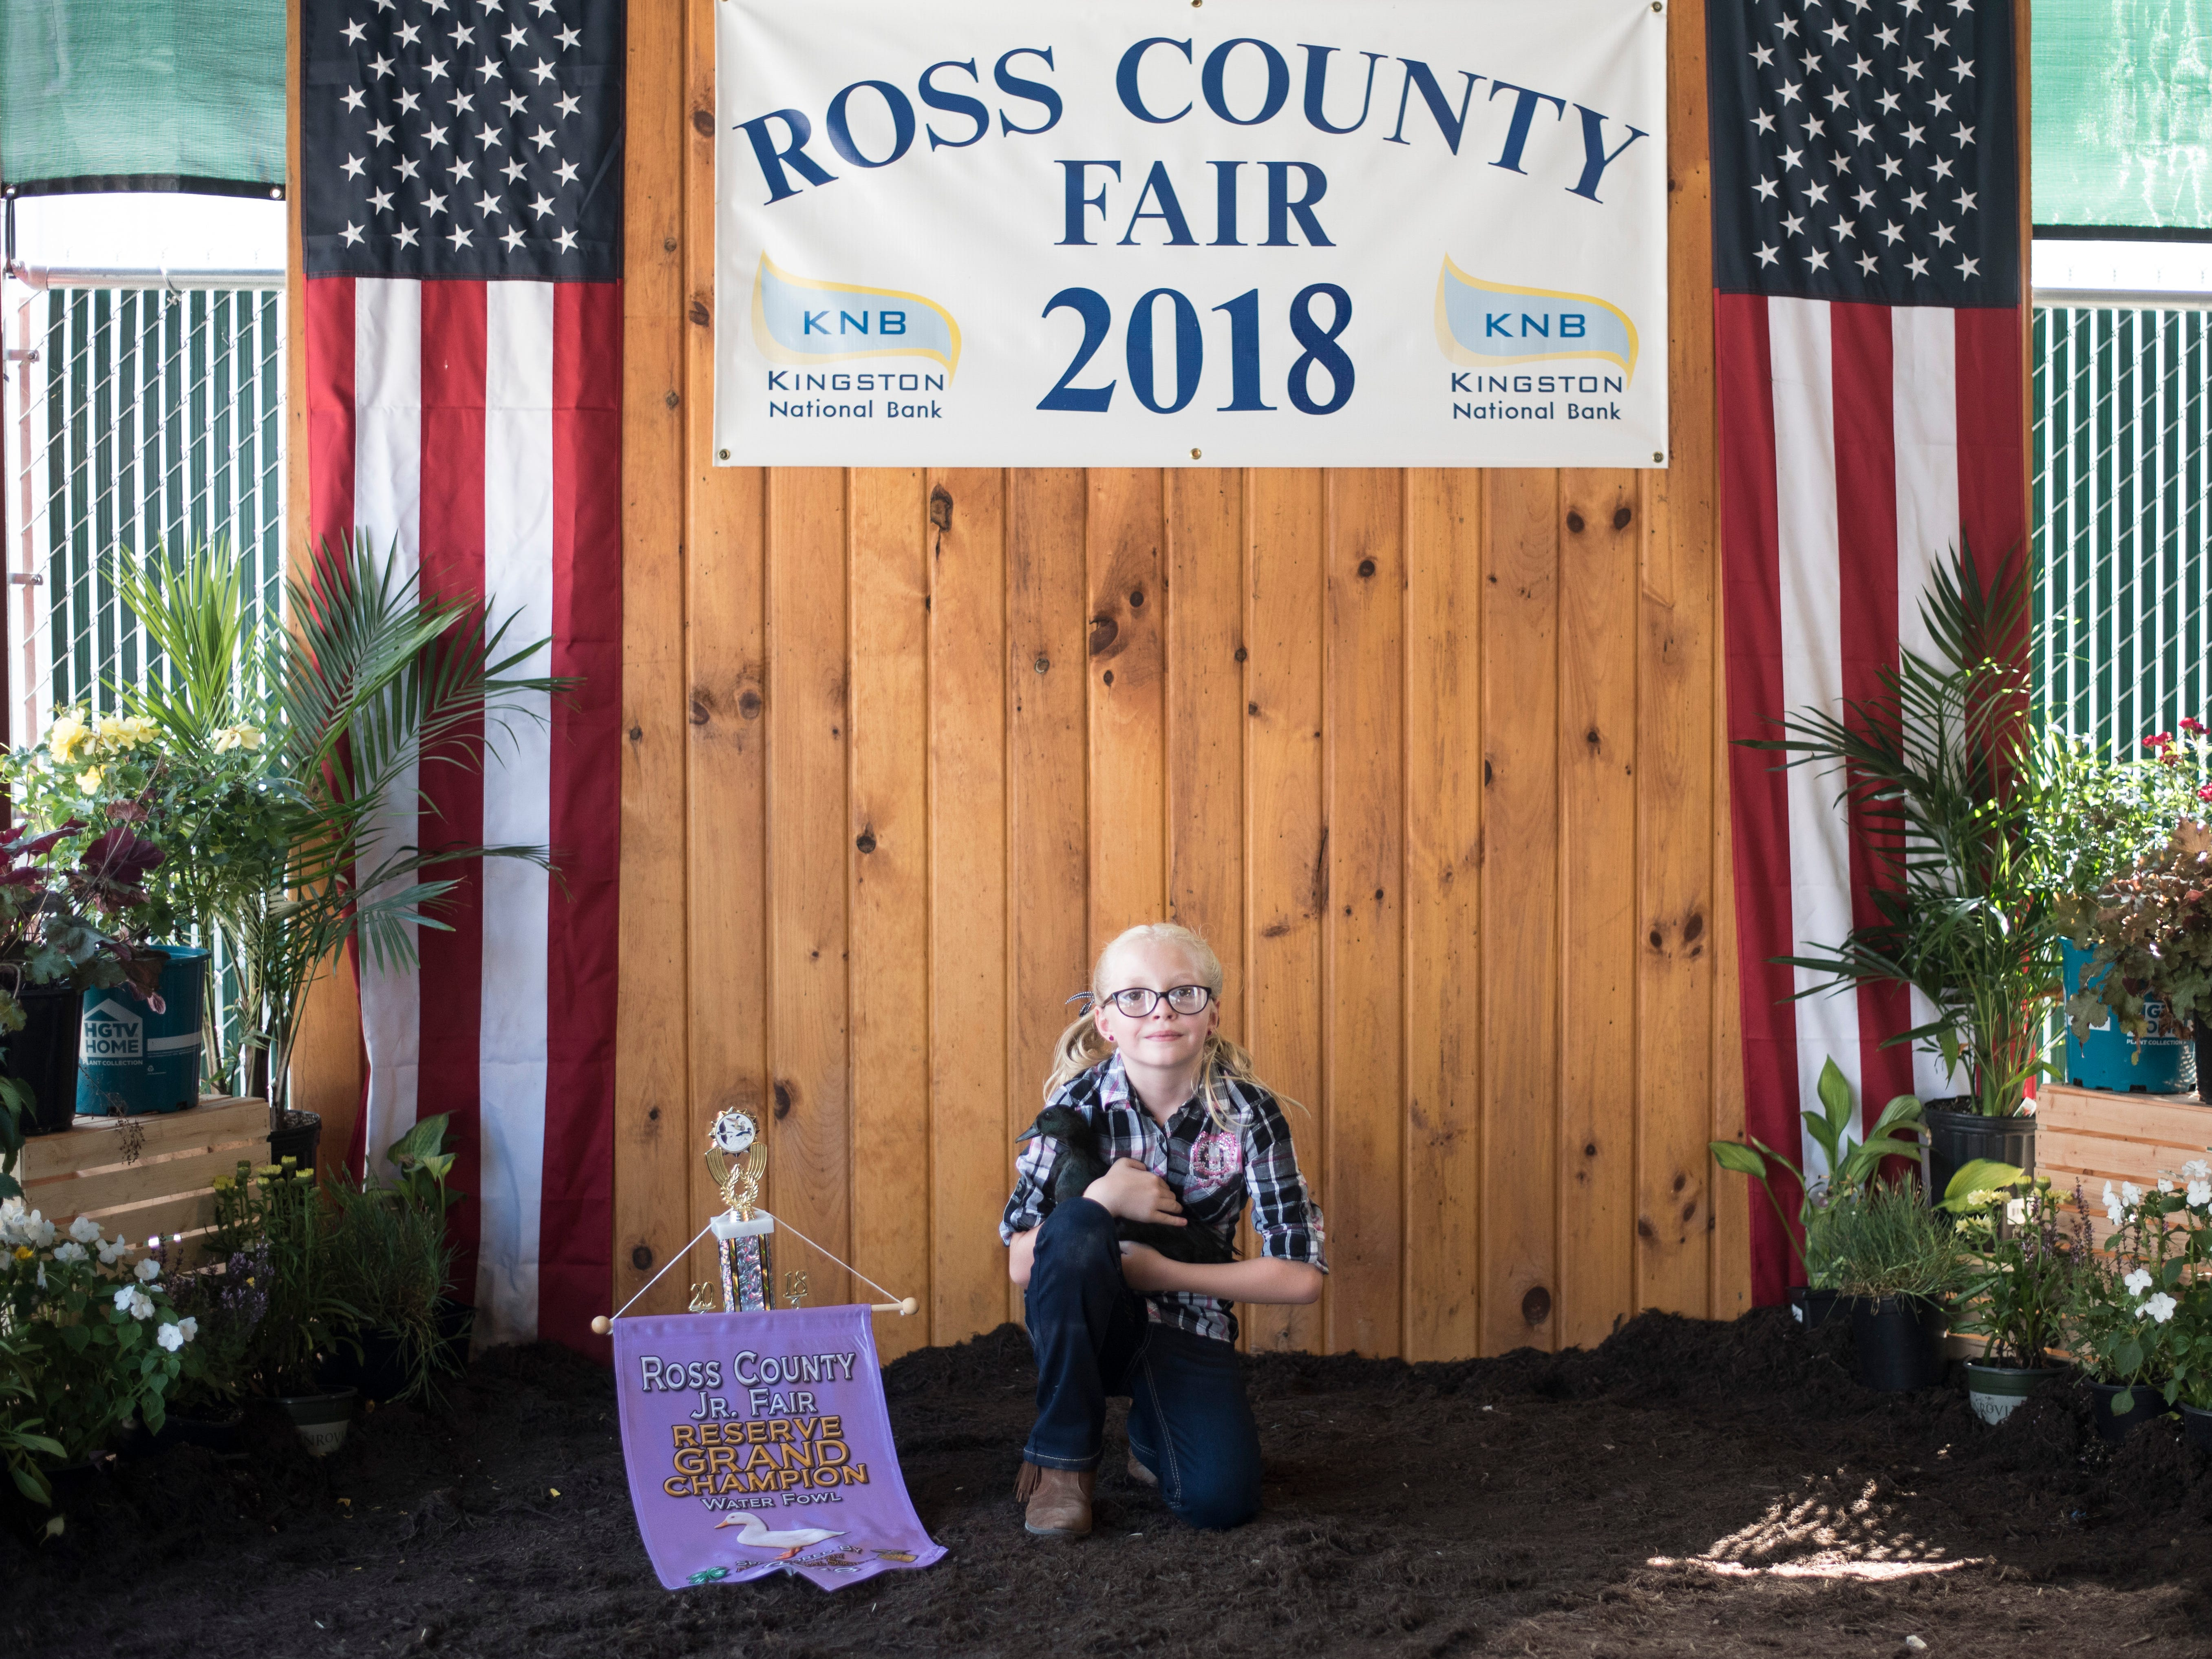 Highlights and portraits of the of the 2018 Jr. Fair Poultry Production and Fancy Poultry judging and showmanship contest. Alayna Benner, 9, poses after winning Reserve Grand Champion with her water fowl at the 2018 Ross County Fair on Monday, August 6.